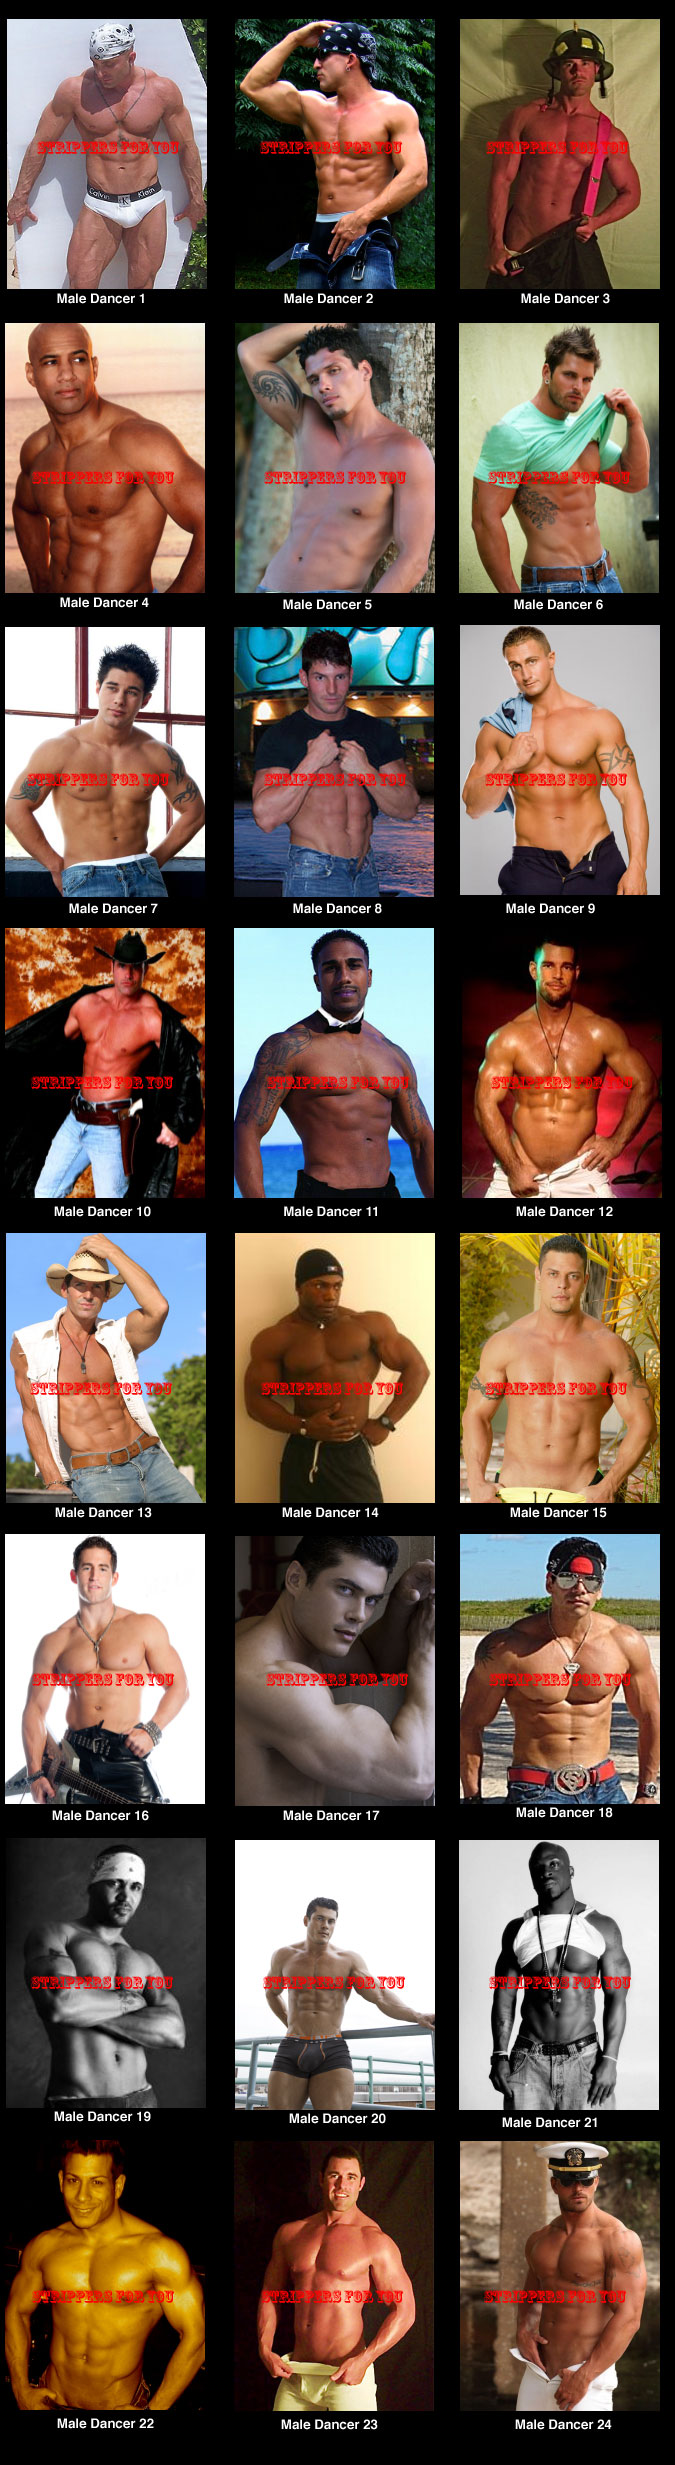 Nashville male strippers